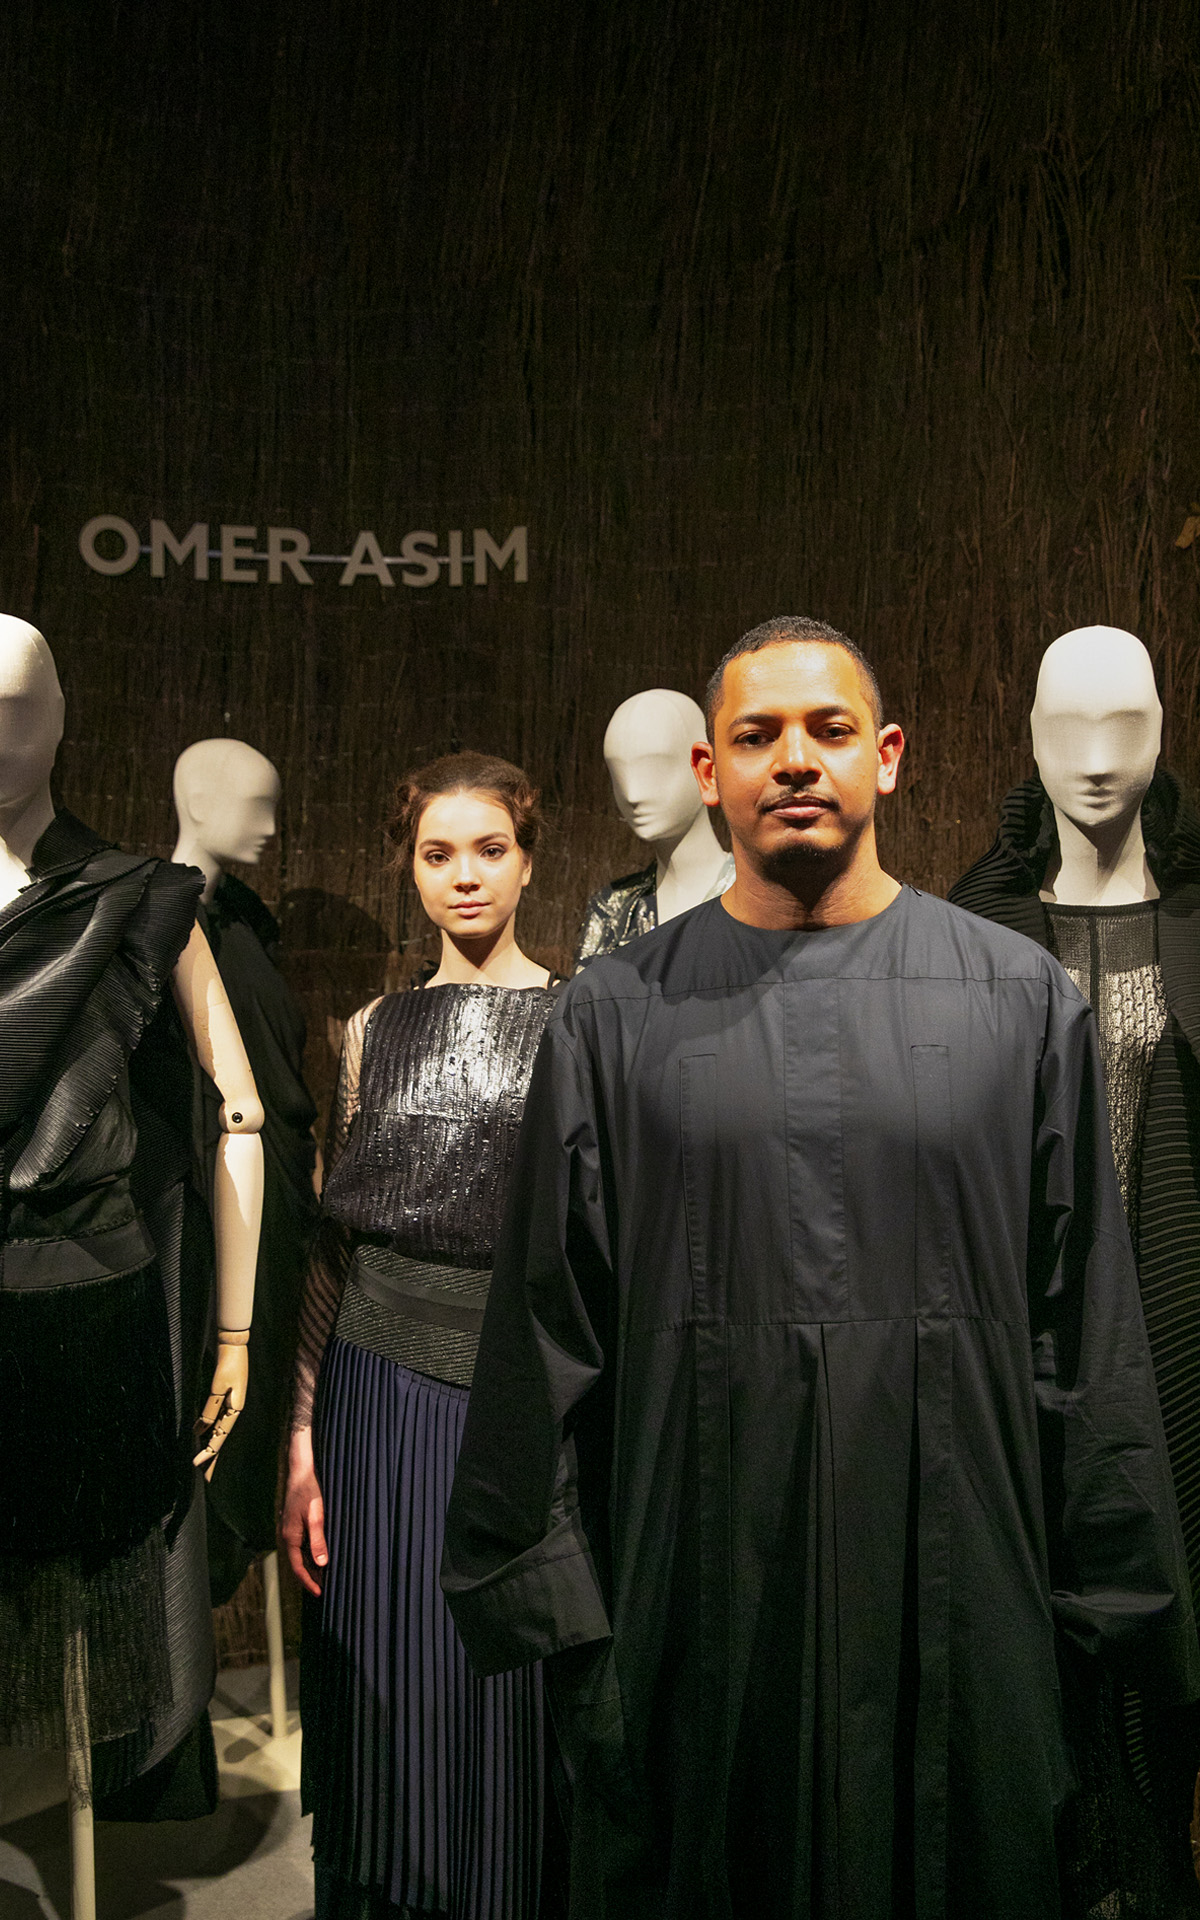 Omer Asim at Milan Fashion Week 2020